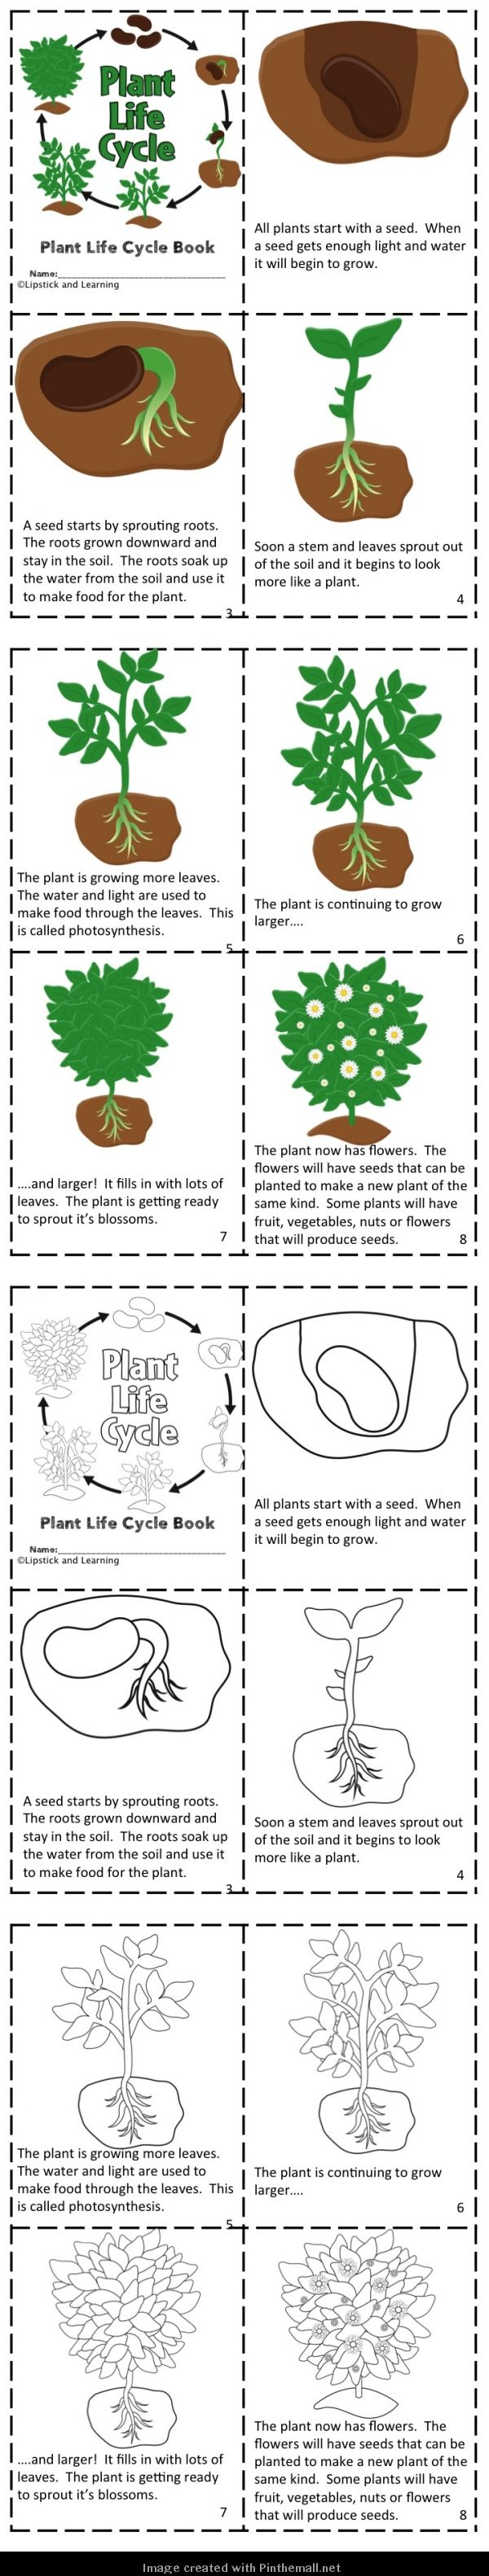 PLANT LIFE CYCLE Mini Reader, Vocabulary Cards, & Foldable ...